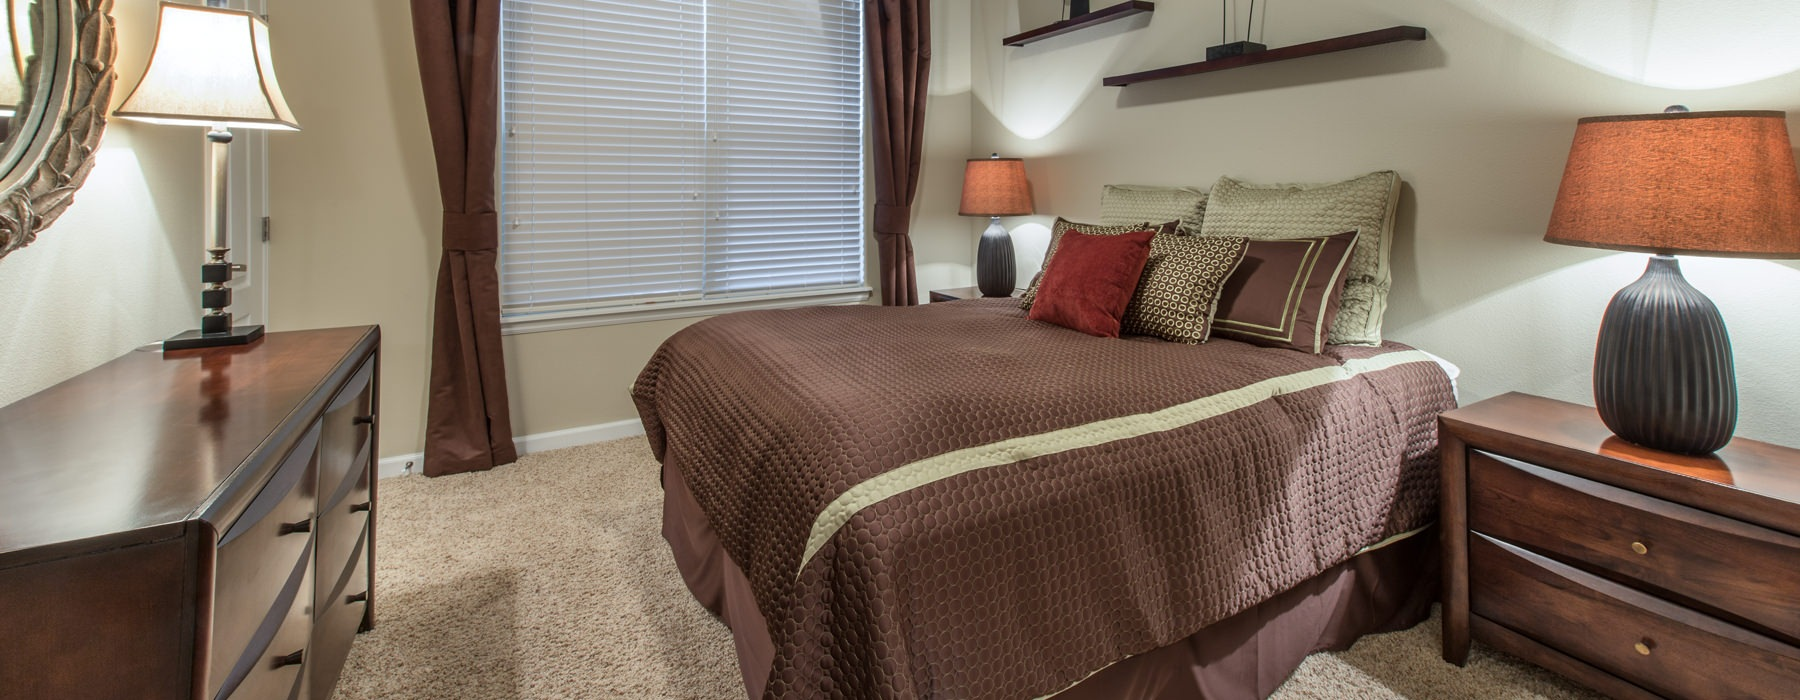 Well lit bedroom with large windows for natural light and a queen size bedroom